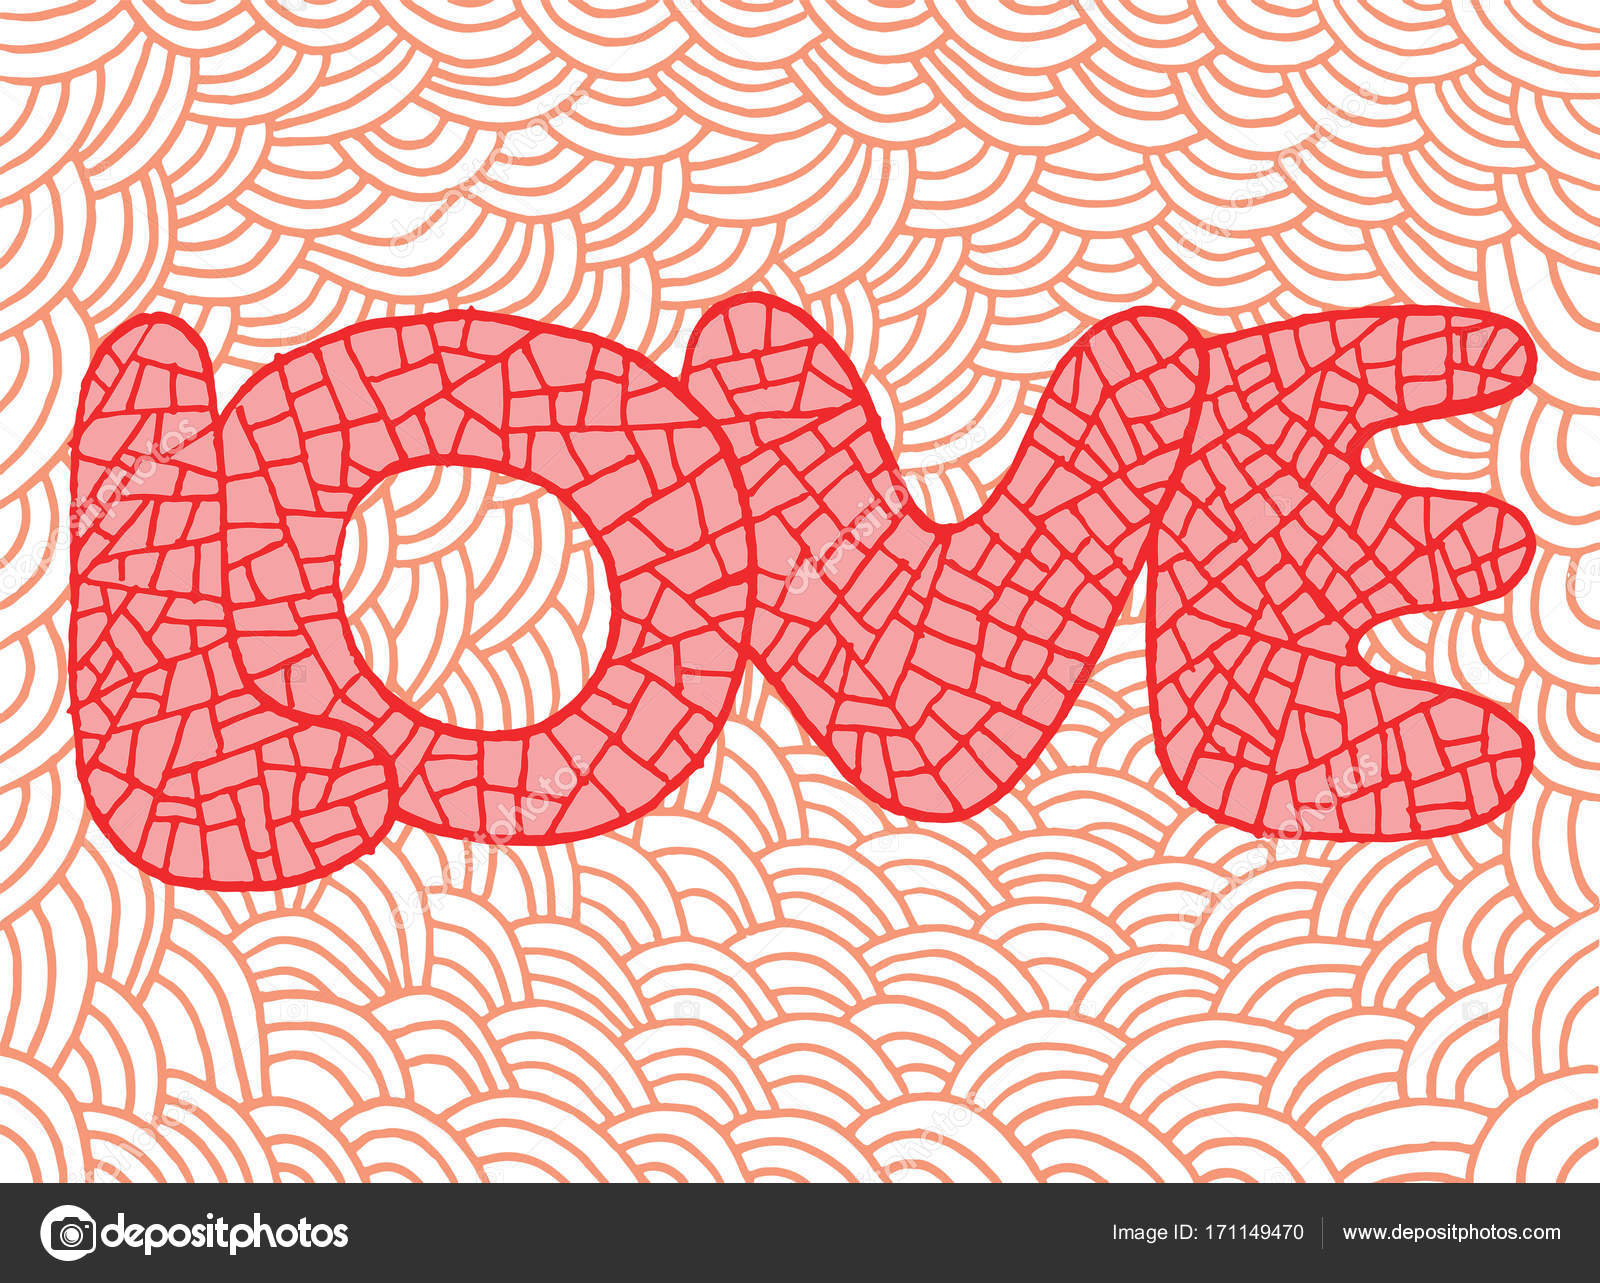 Doodle Art With Love Word Hand Drawn Pink Ilustration For StValentines Day February 14 Vector By Fesleen